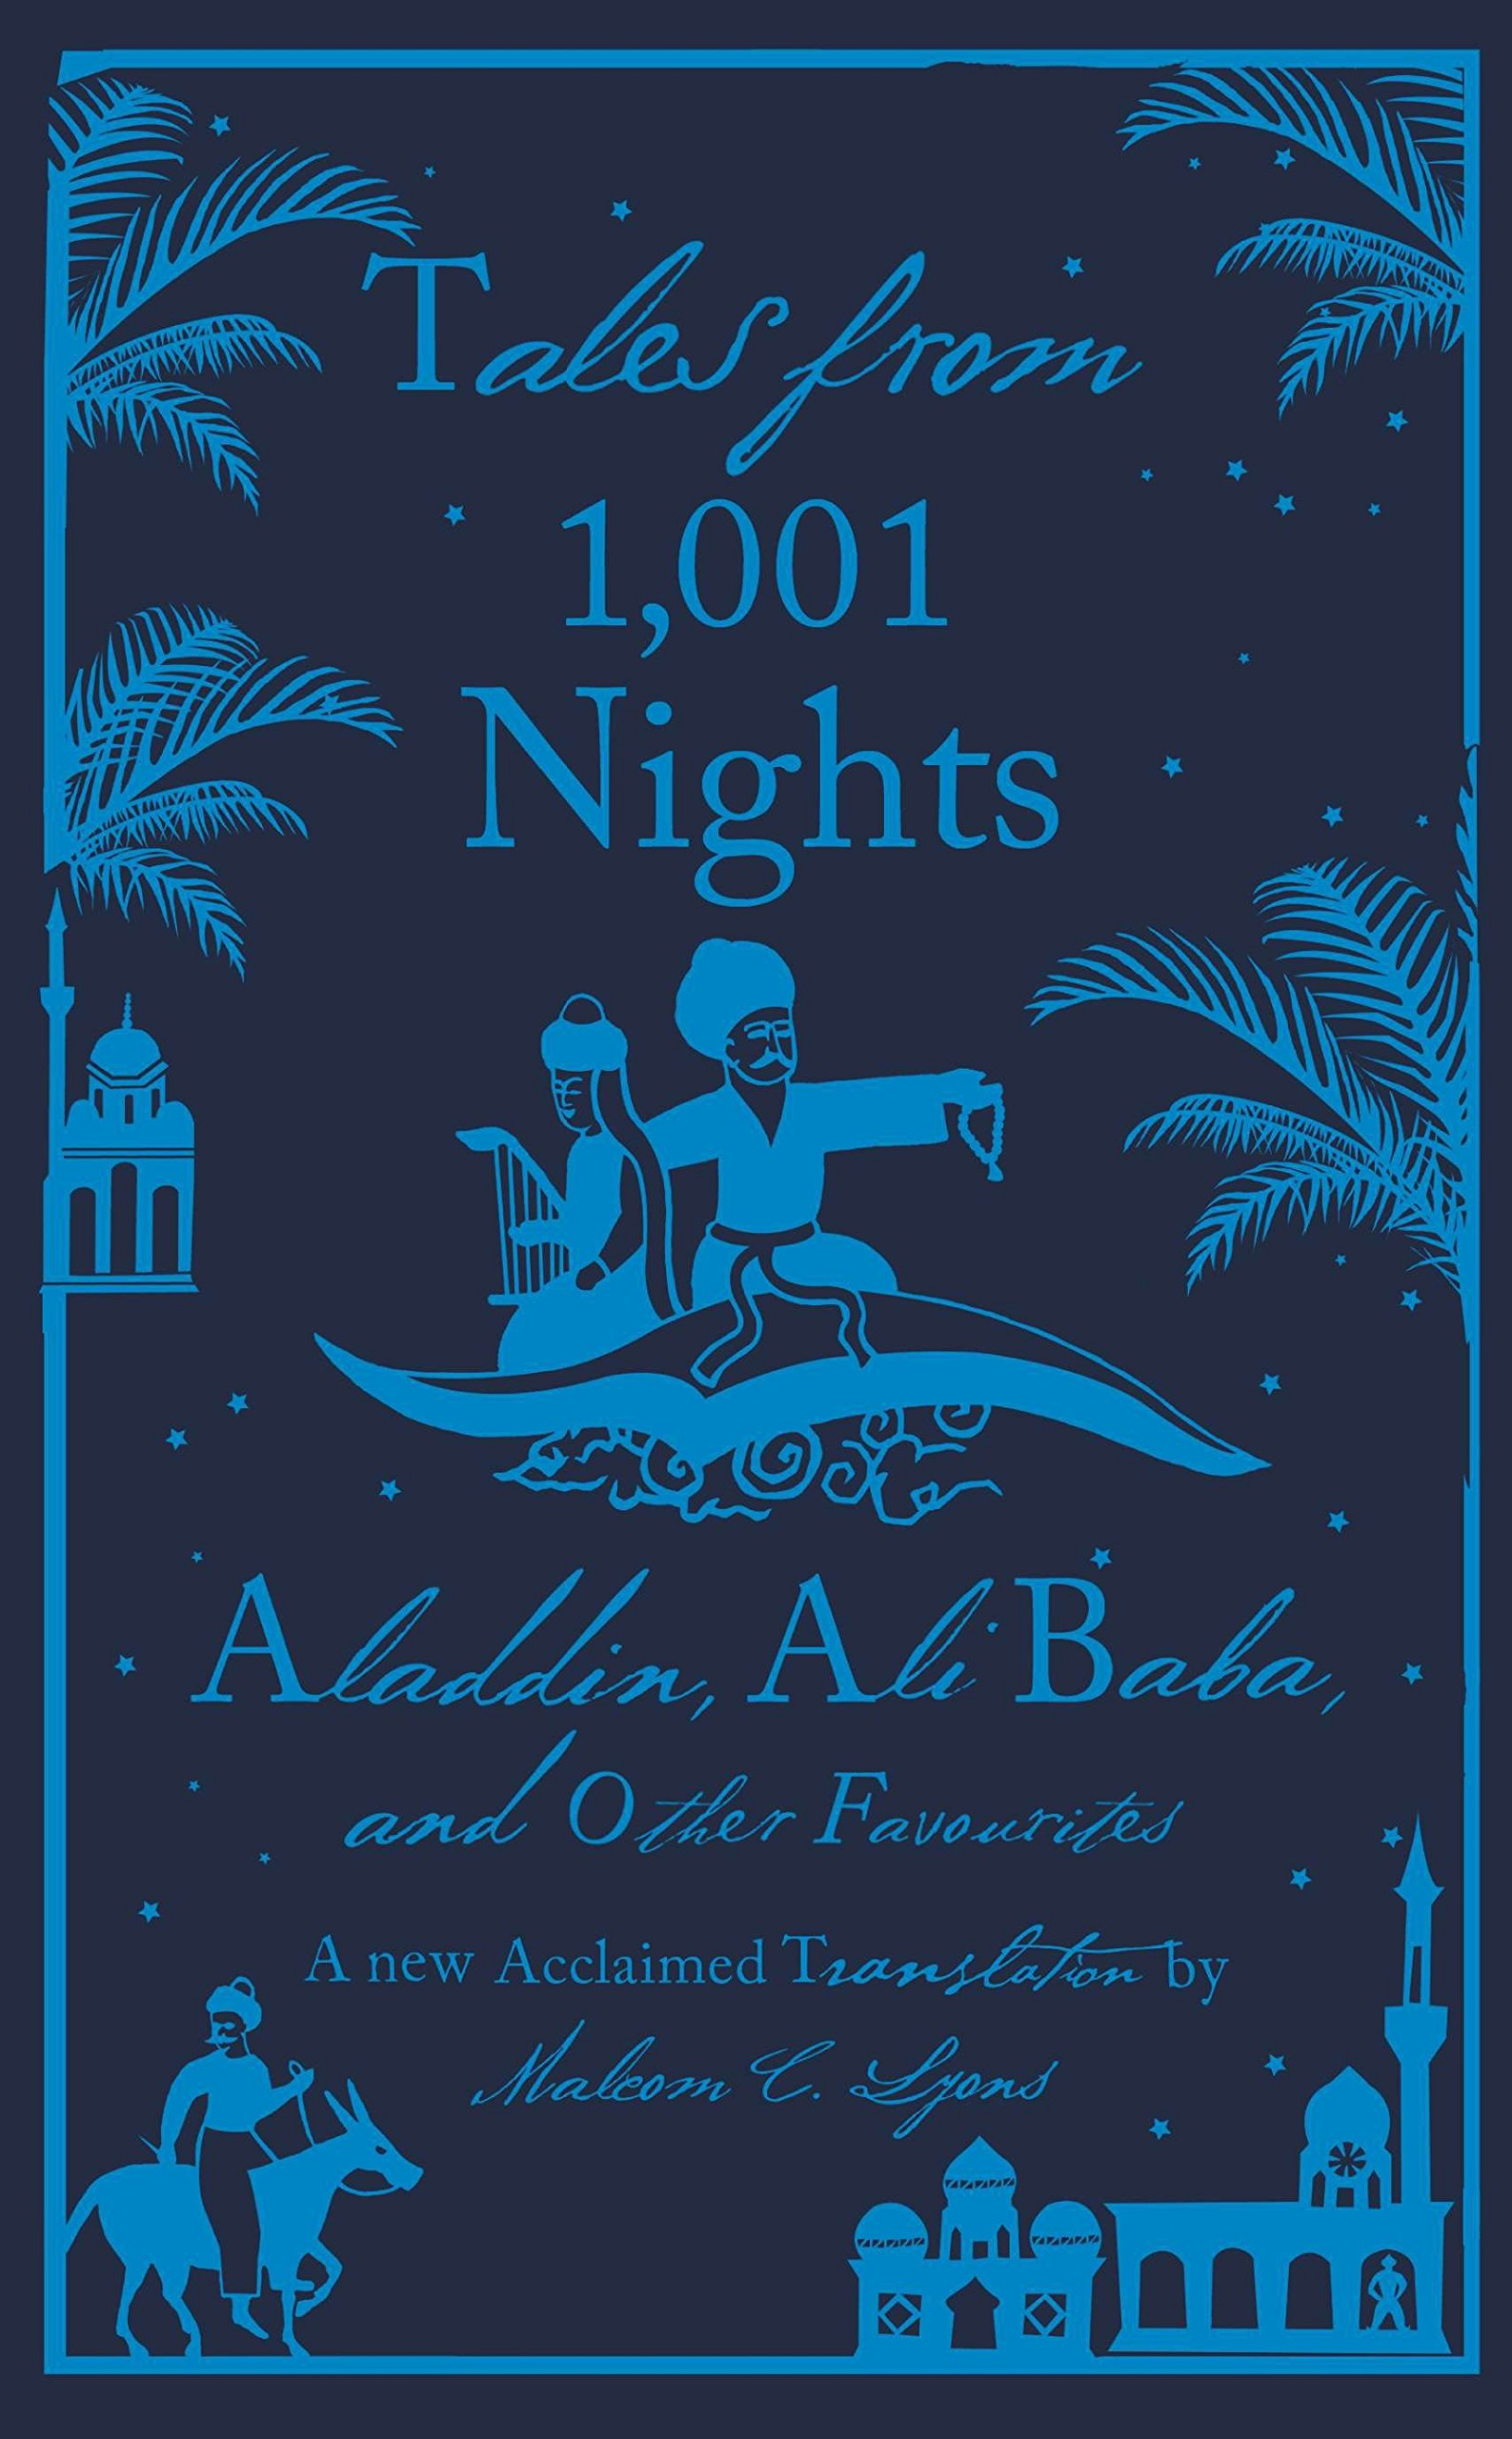 Read Online Tales from 1,001 Nights: Aladdin, Ali Baba and Other Favourites (A Penguin Classics Hardcover) PDF